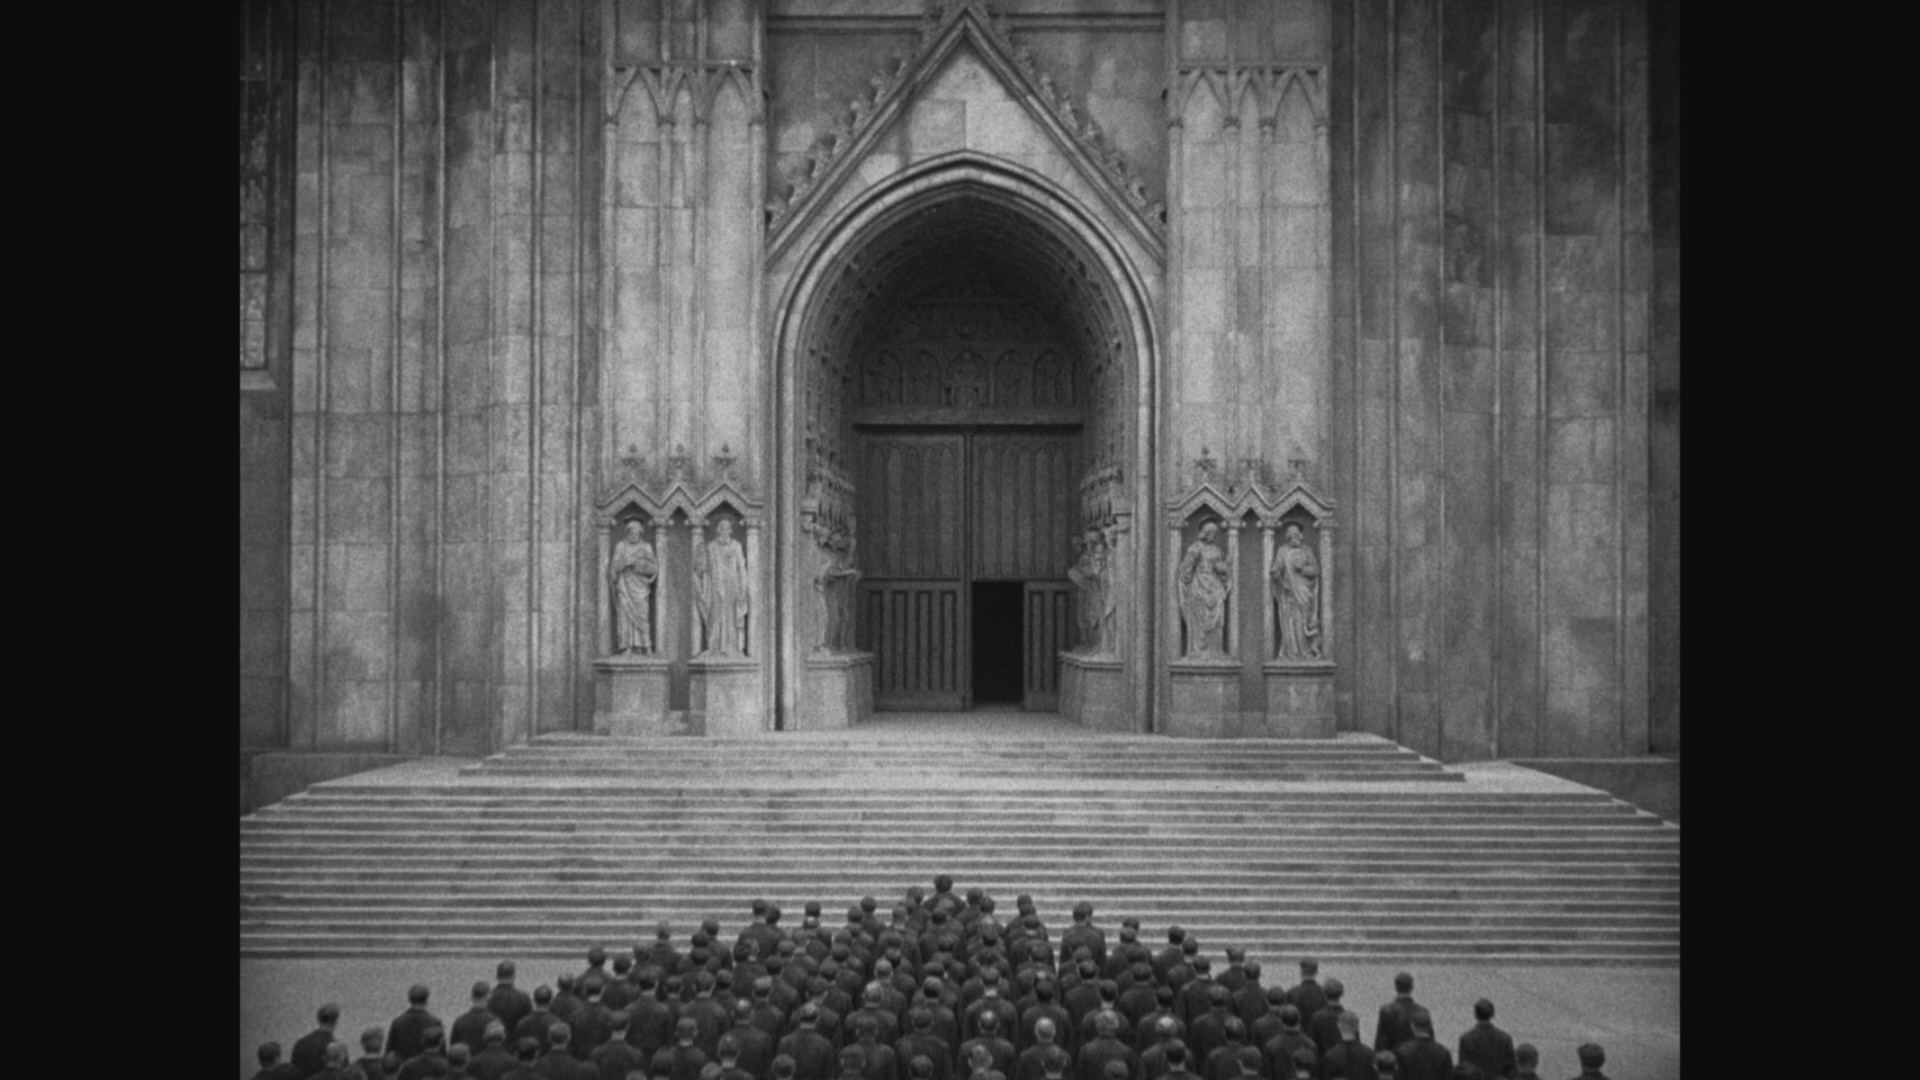 https://i0.wp.com/www.dvdbeaver.com/film3/blu-ray_reviews52/metropolis_blu-ray_/large2/large_metropolis_MoC_blu-ray_last.jpg